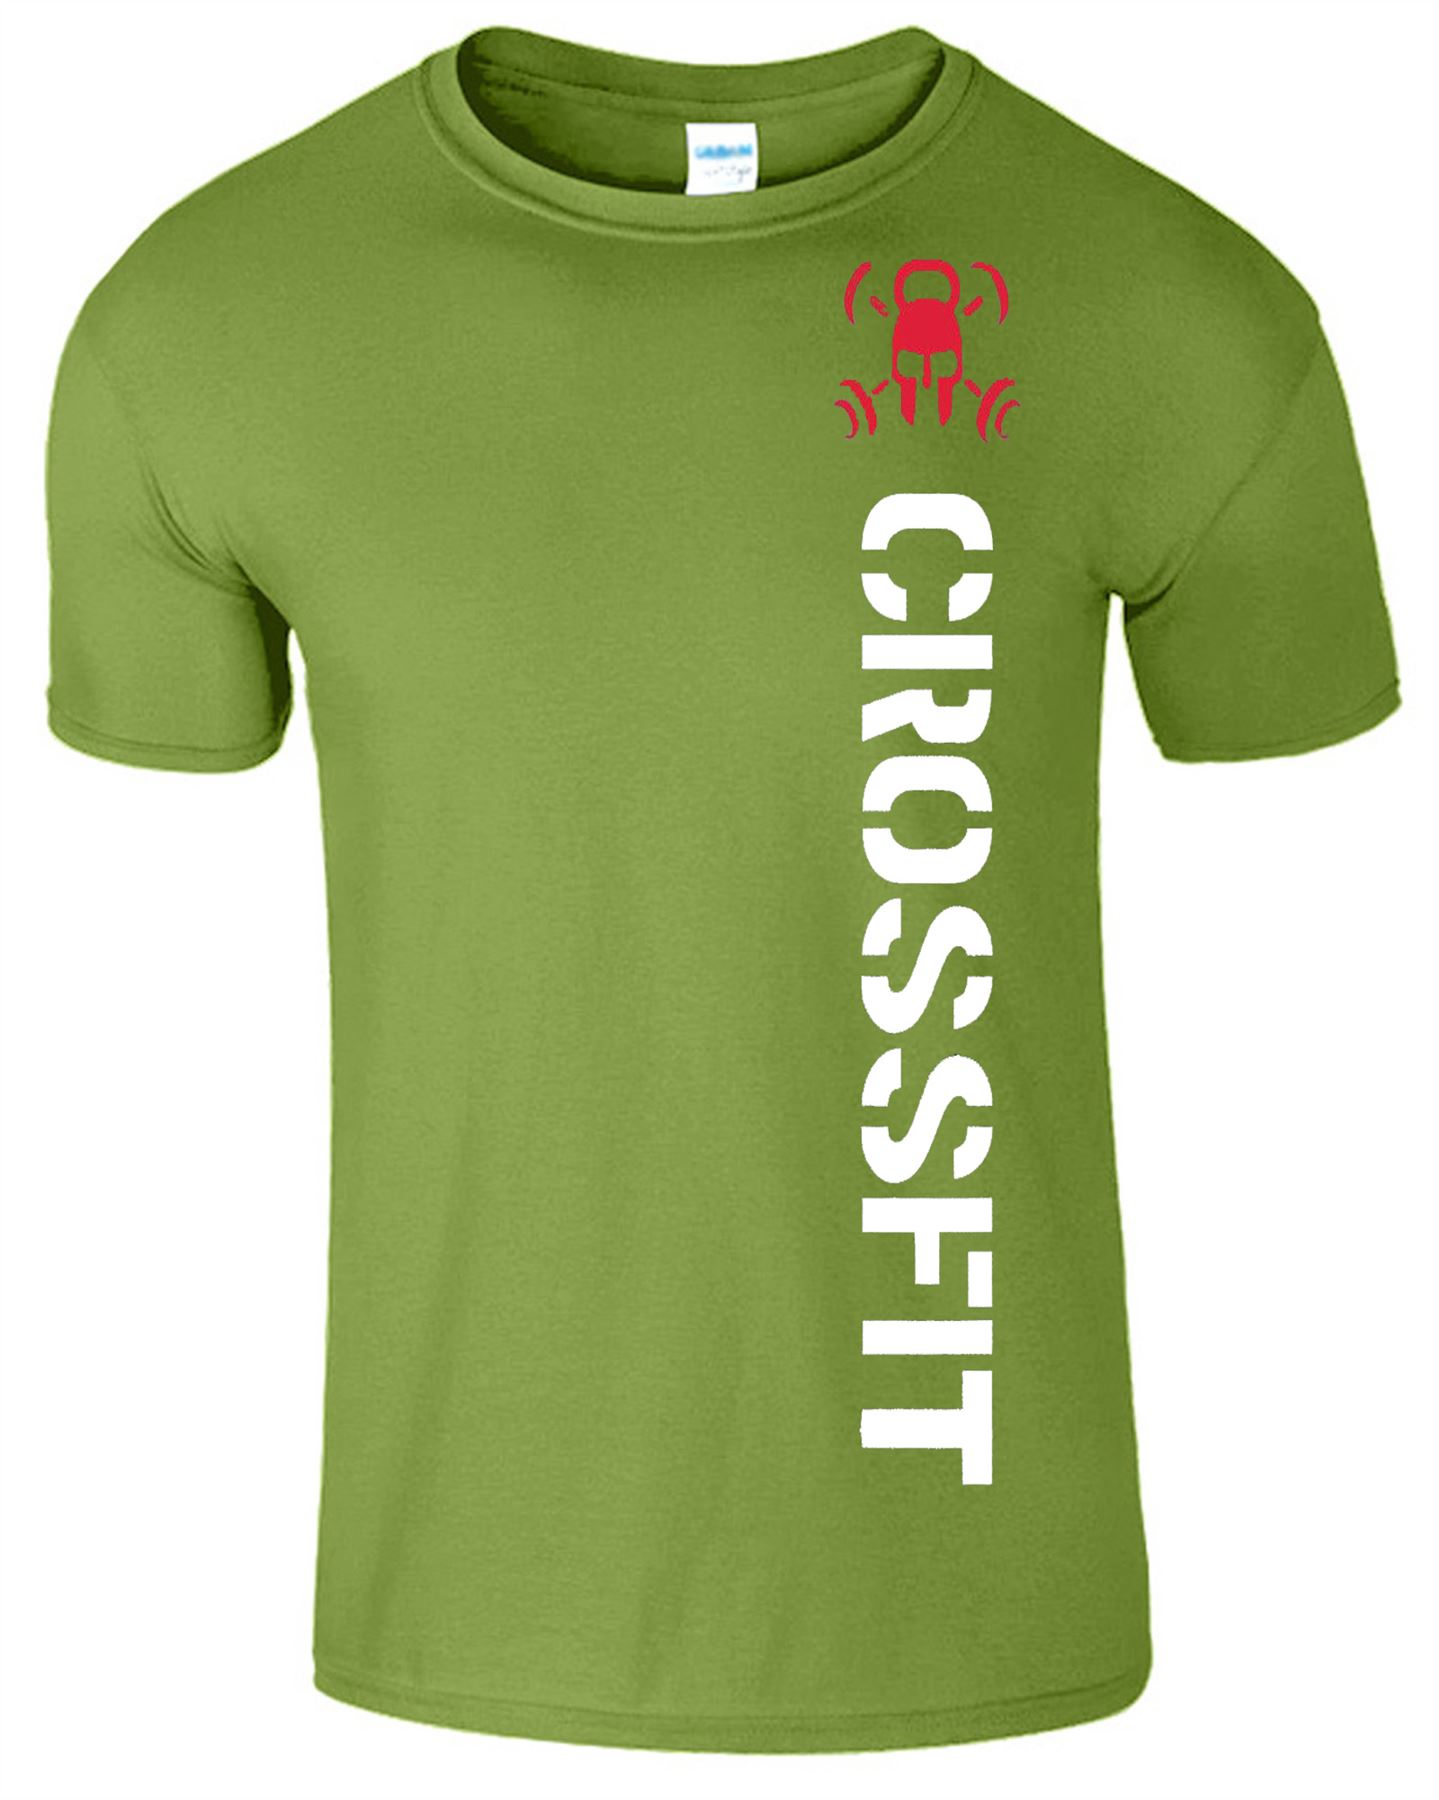 Gym crossfit new mens t shirt wod functional training for Best fitness t shirts